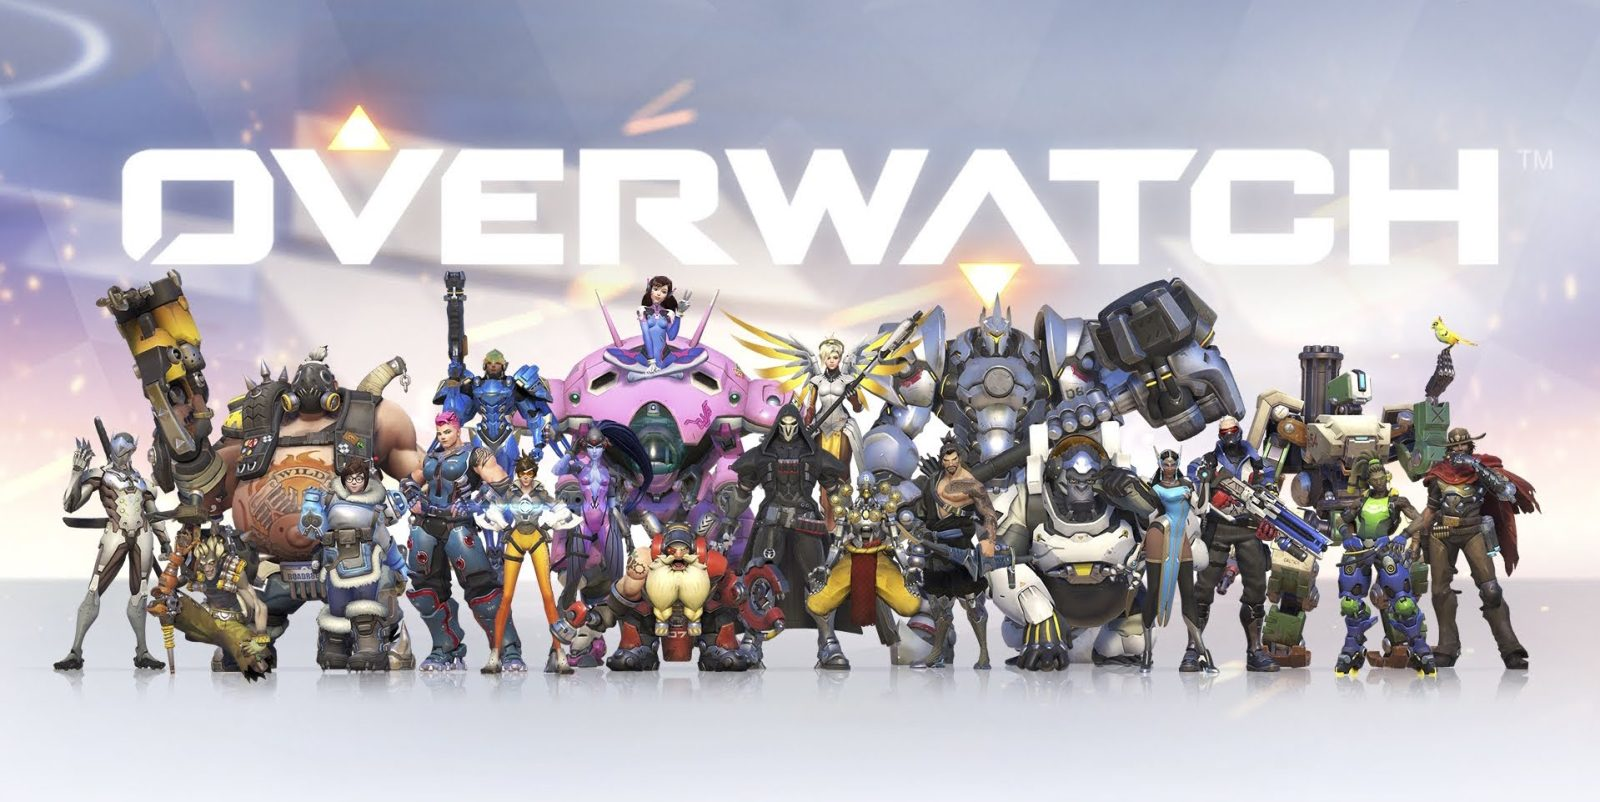 games apps black friday pricing on overwatch 28 titanfall 2 26